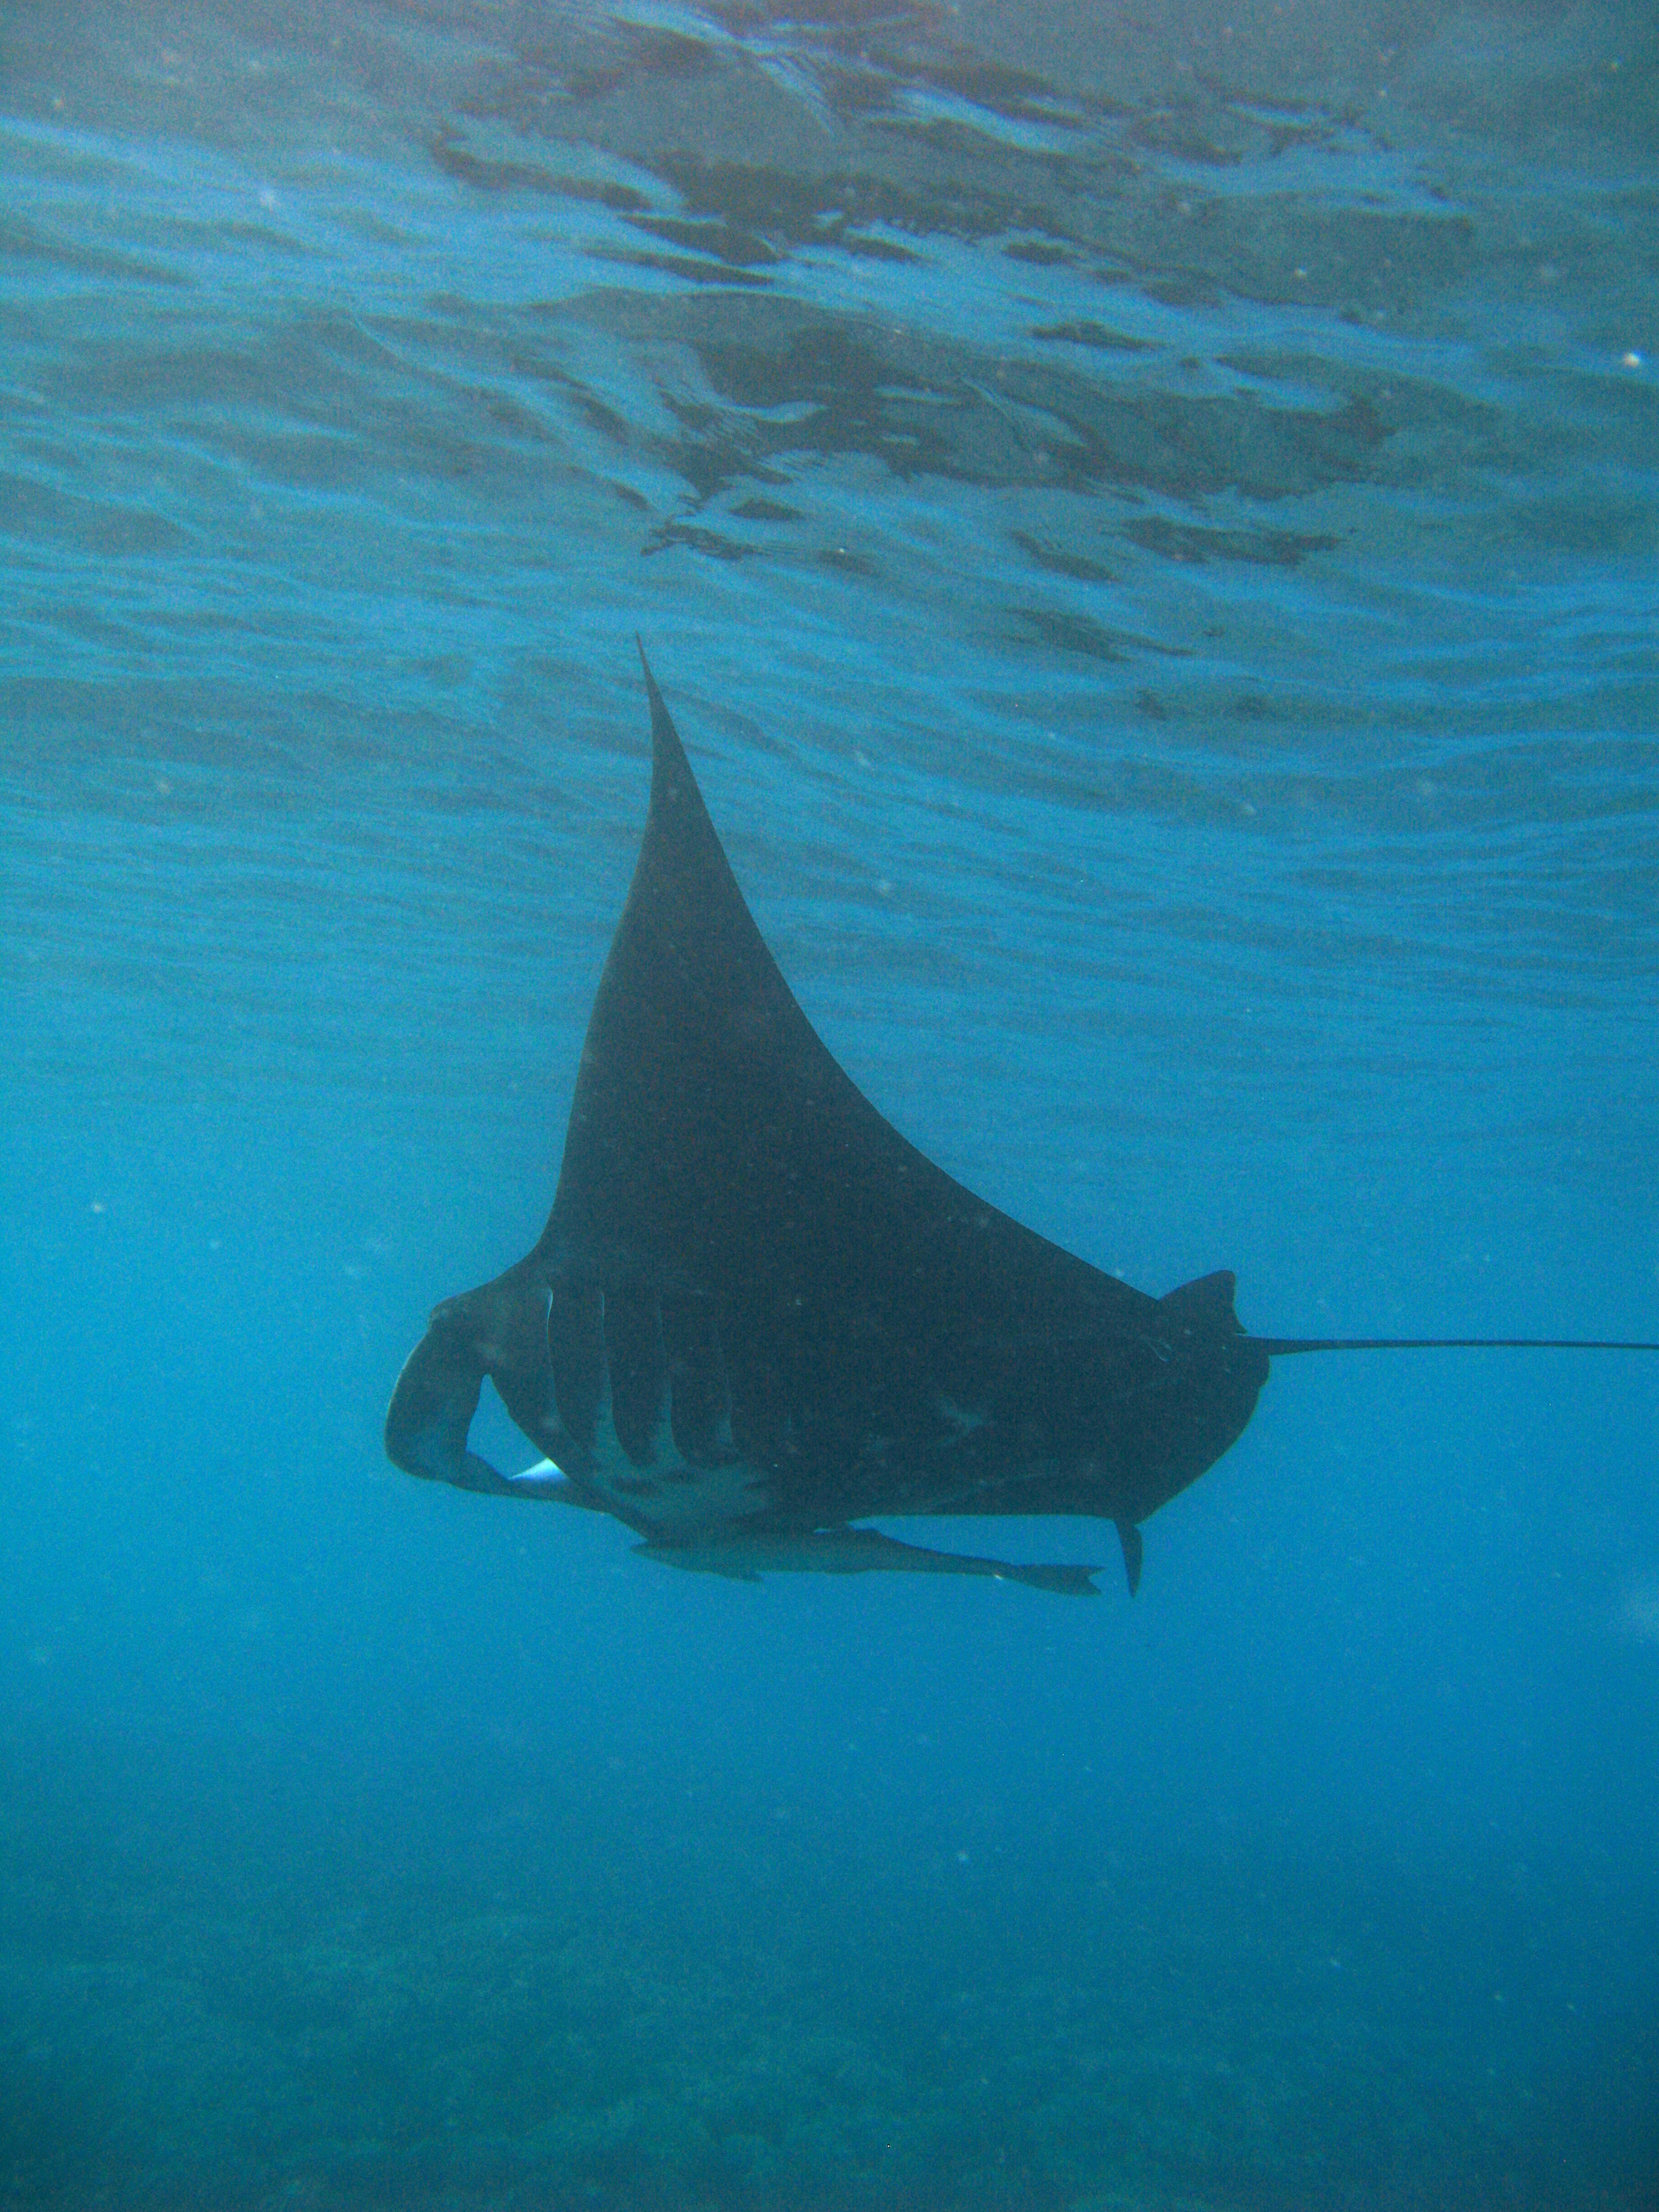 Underwater view of a swimming manta ray with extended pectoral fins and its long tail trailing behind. outstretched cephalic fins at the front are used to deflect plankton in the water for feeding. A remora 'sucker fish' is seen hanging on the bottom of the animal